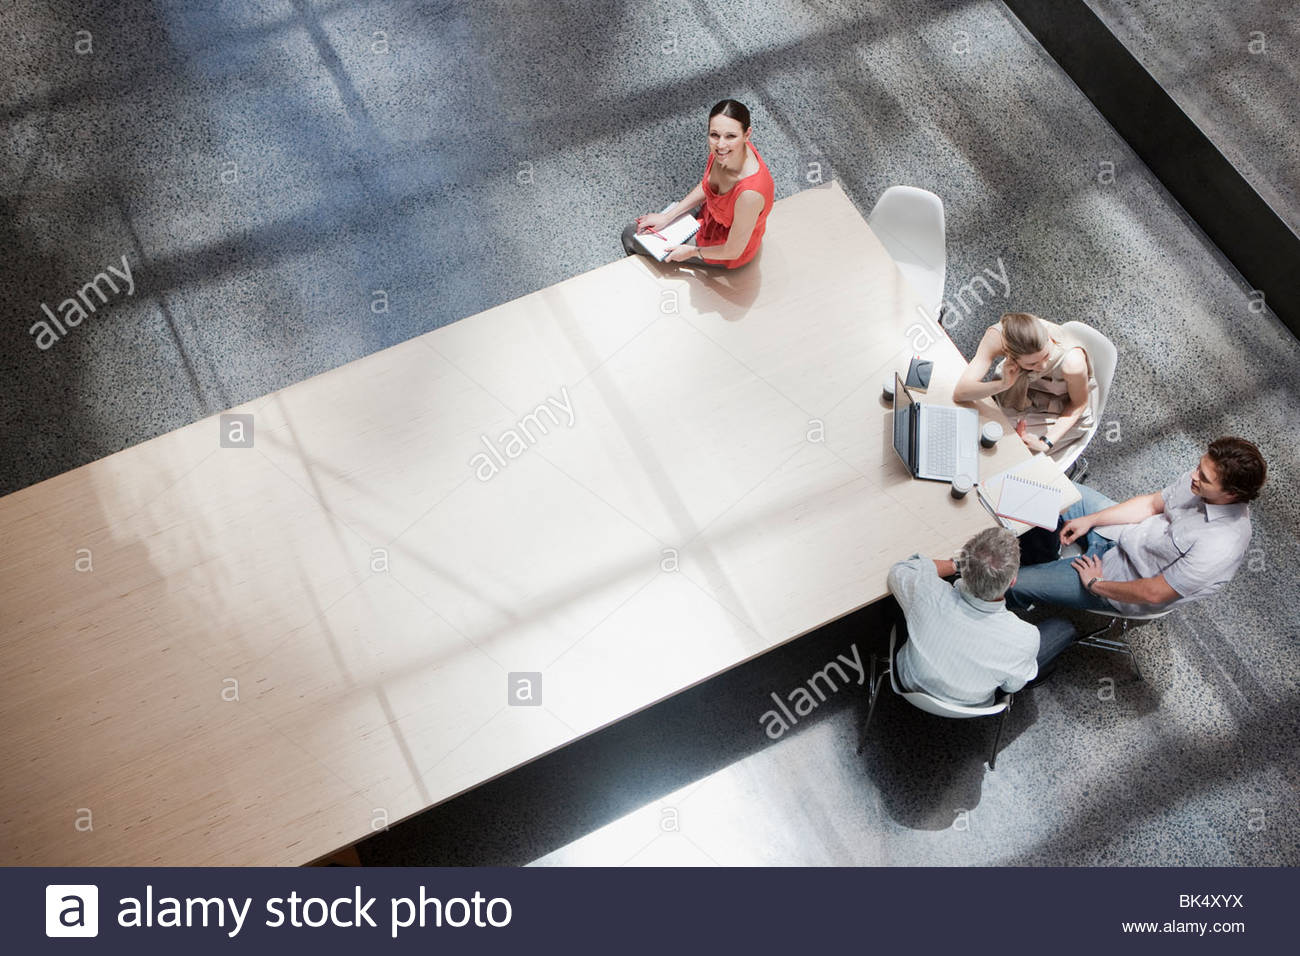 Businesswoman working apart from co-workers at conference table - Stock Image